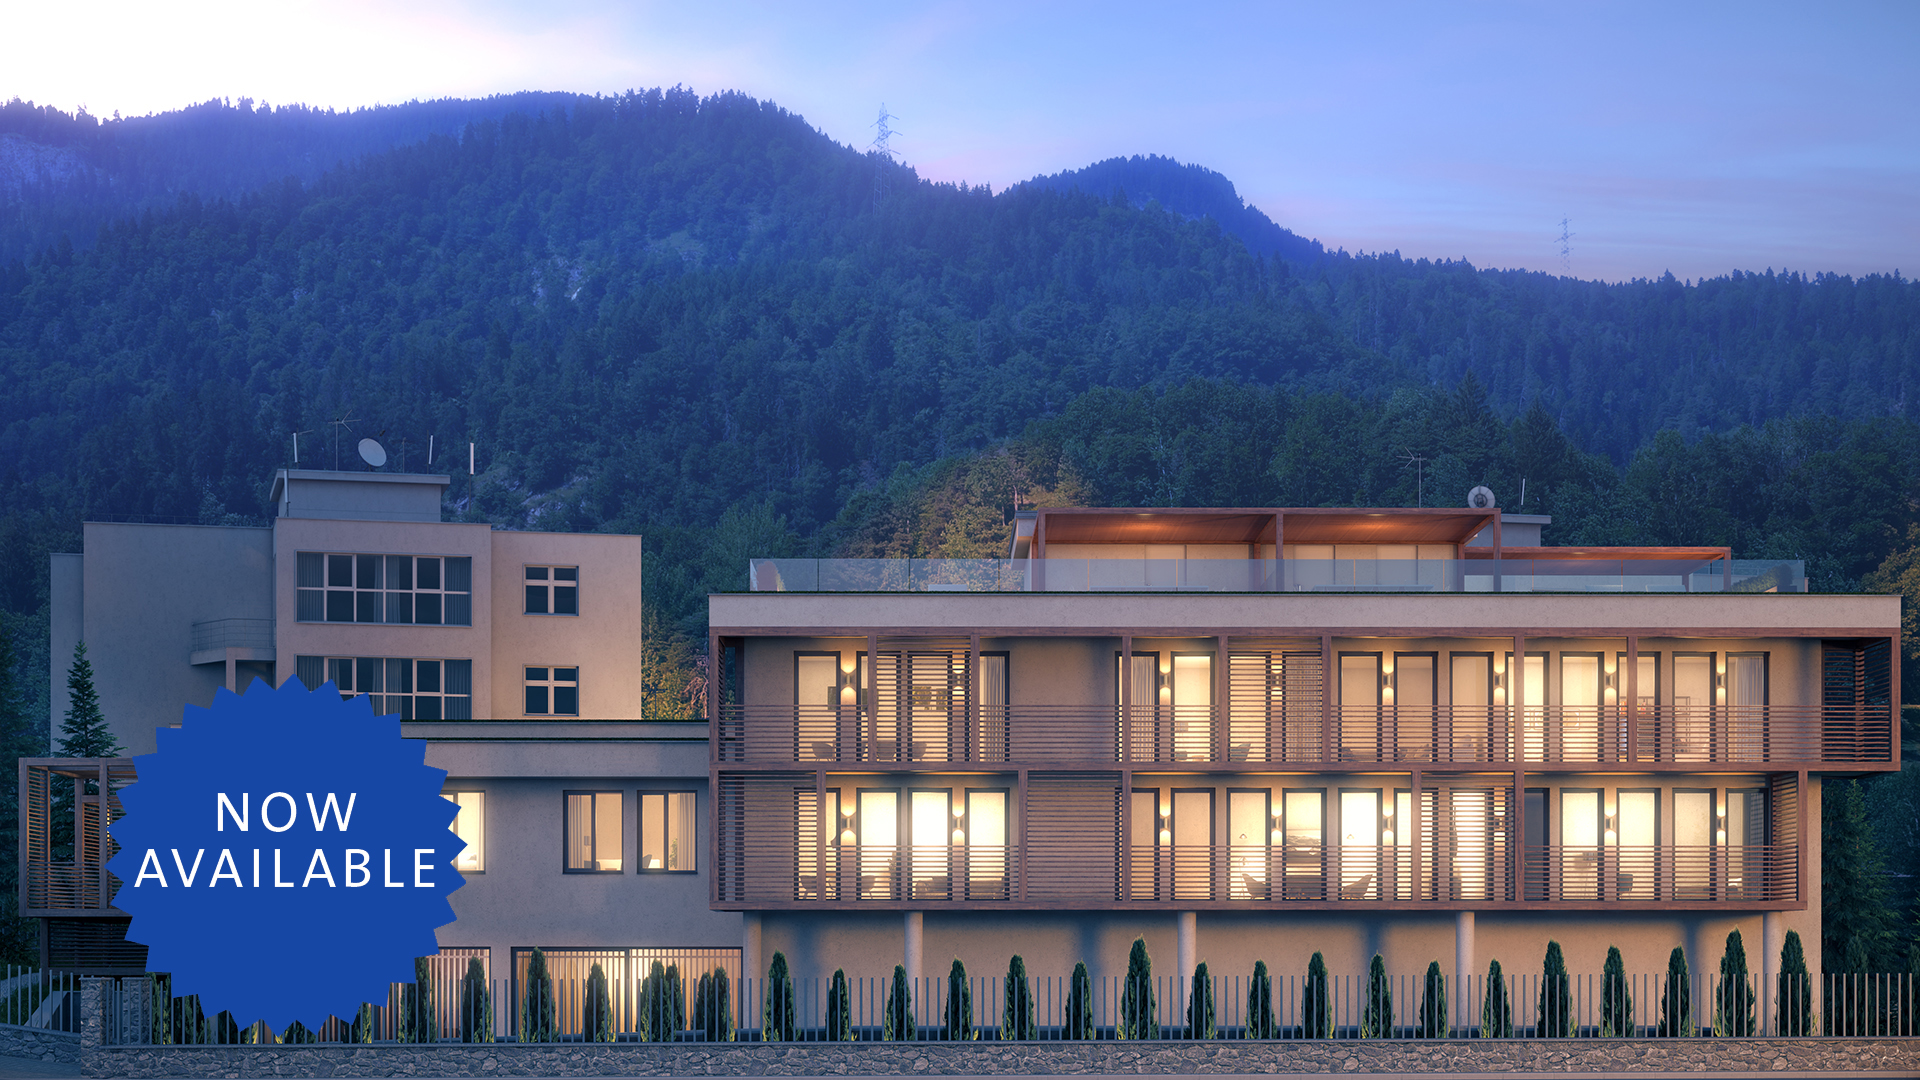 Residences at the Hard Rock Hotel Davos Apartment building-b_night-view-east-facade_nowavailable